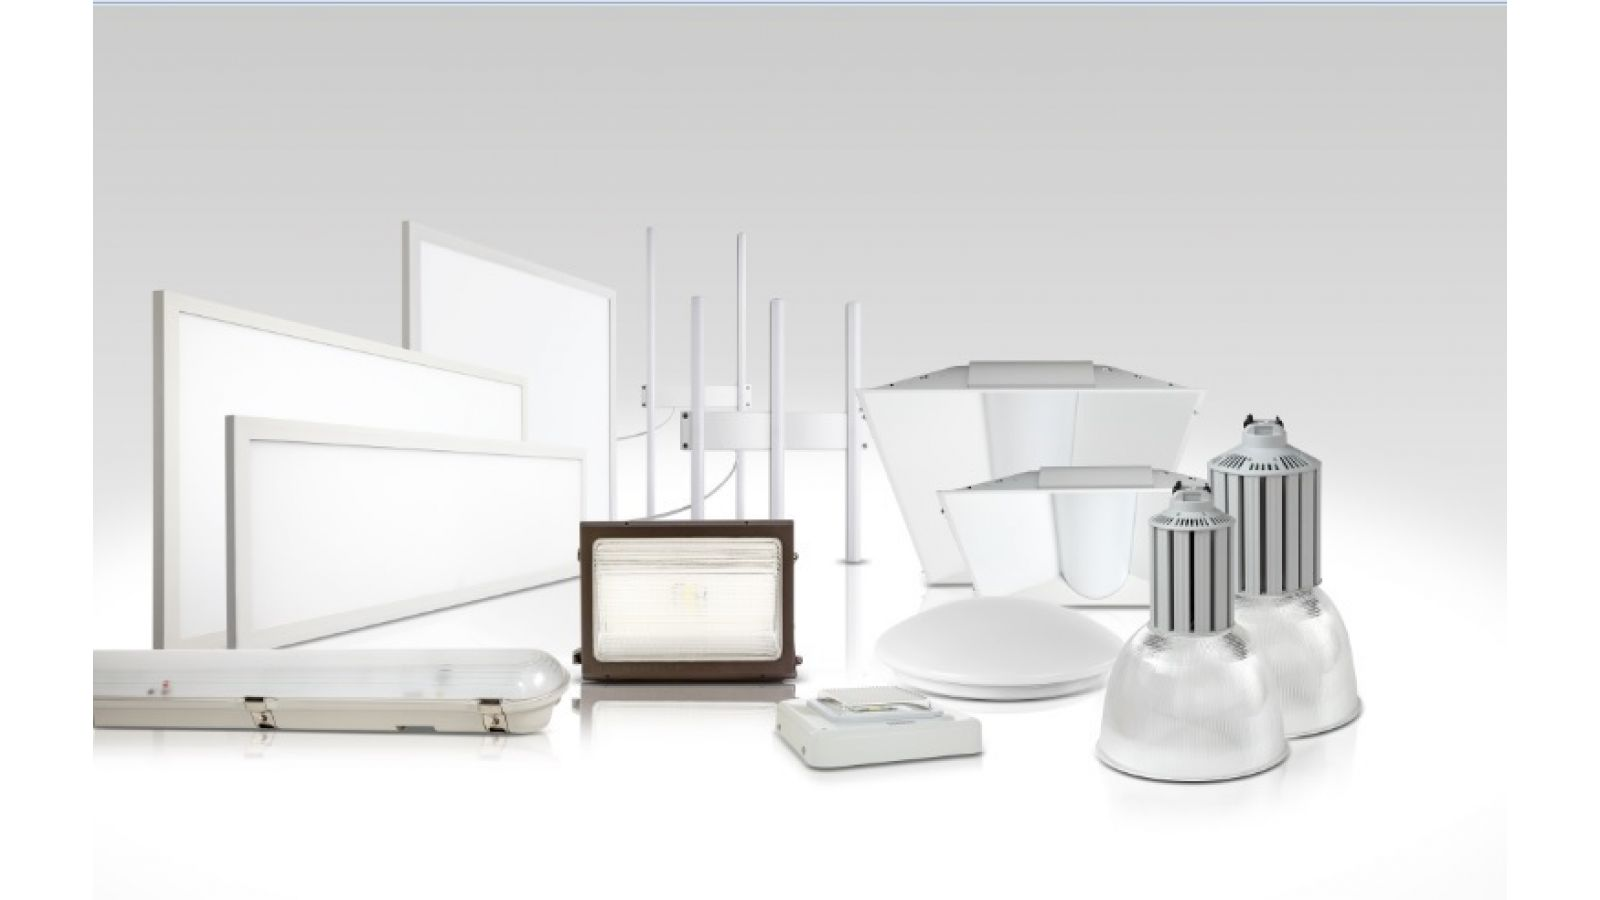 SYLVANIA LED Indoor and Outdoor Luminaires and Retrofit Kits